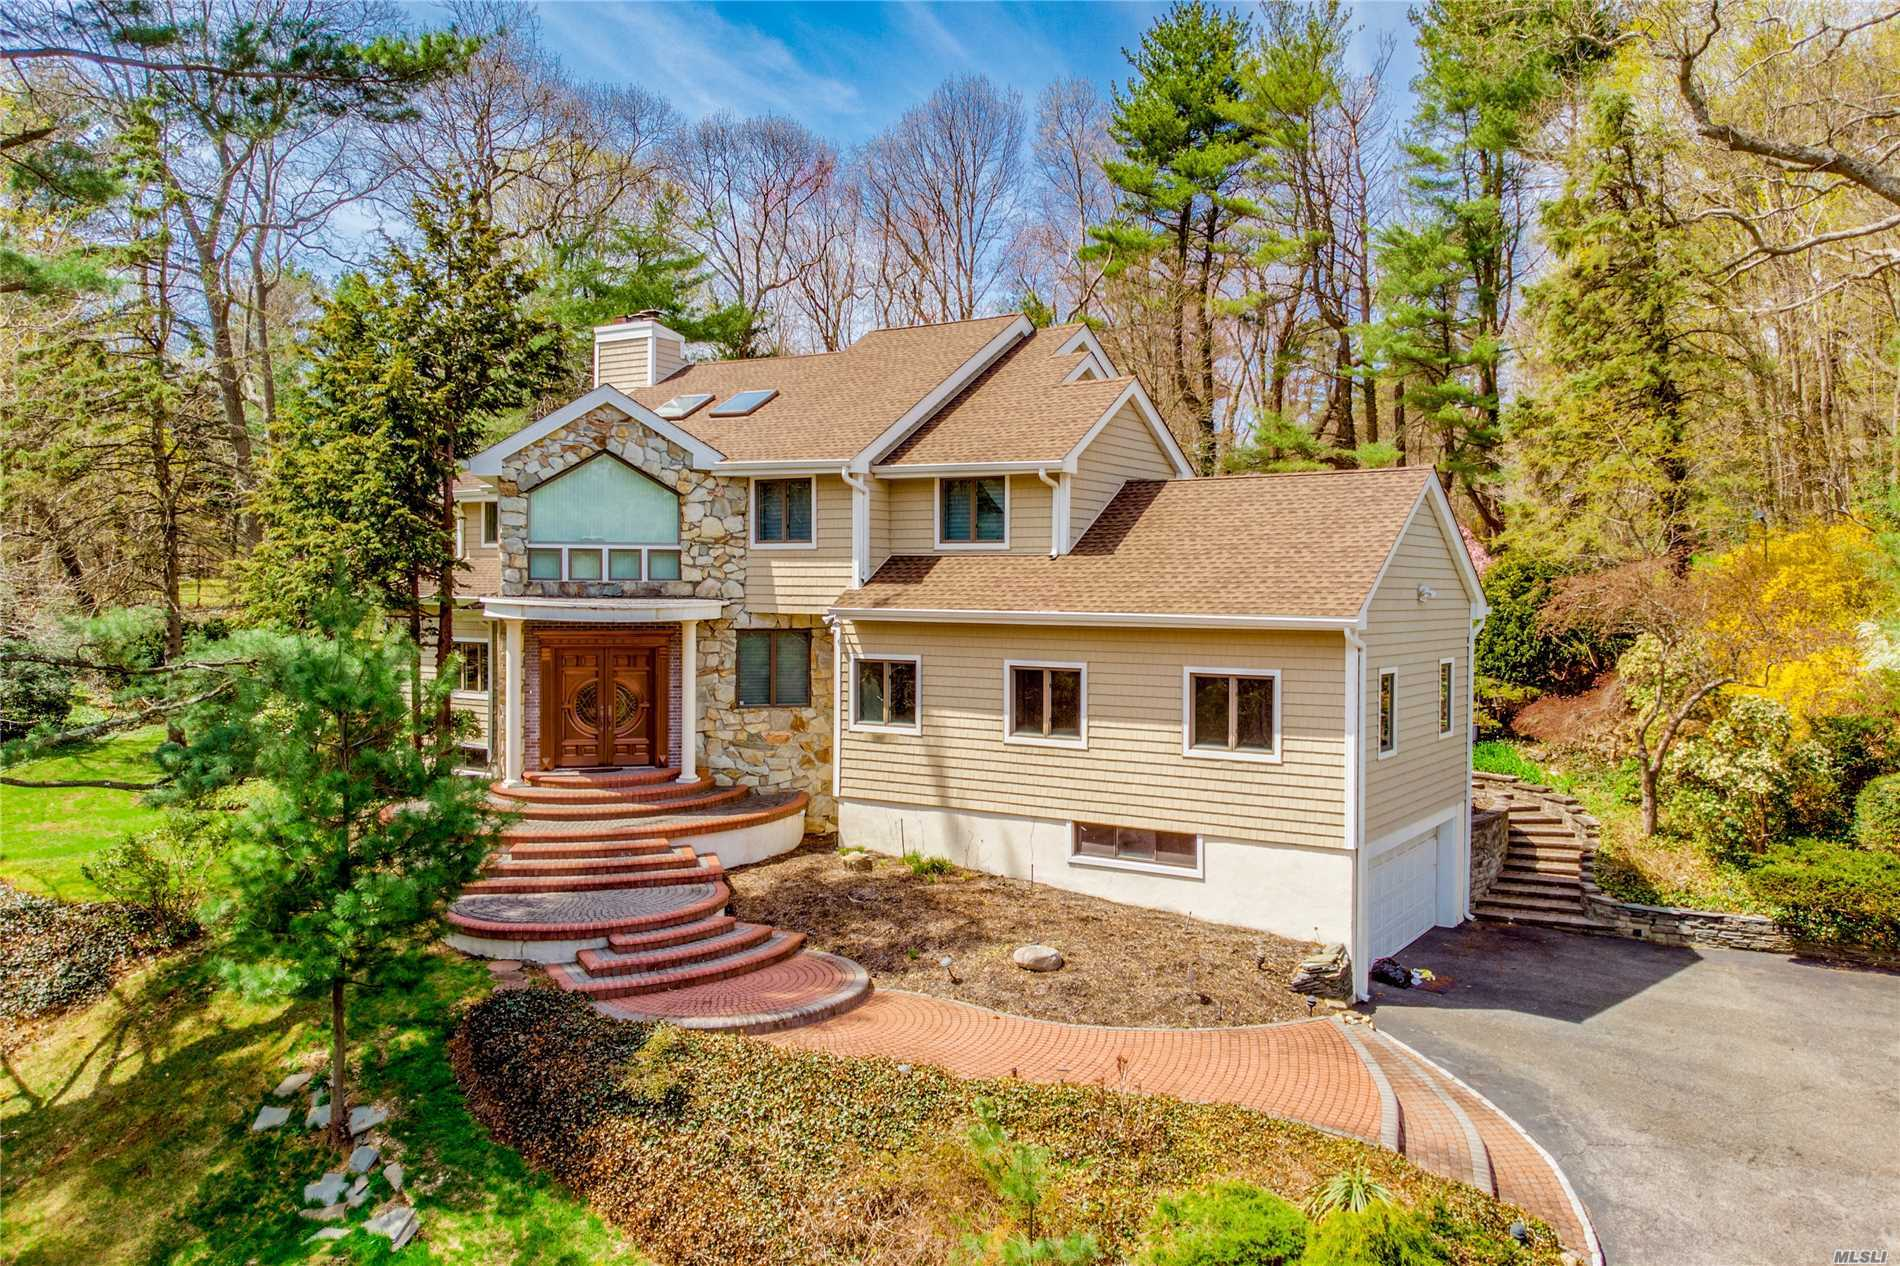 This Magnificent colonial situated very privately on 2.5 Acres Land, Cul-De- Sac, bright and airly with natural light shining throughout, 2 Master suites, Beautiful Park Surround that includes In Ground Swimming Pool and Tennis Court, Whole house Totally Renovated 2015,  The school district is Jericho School,